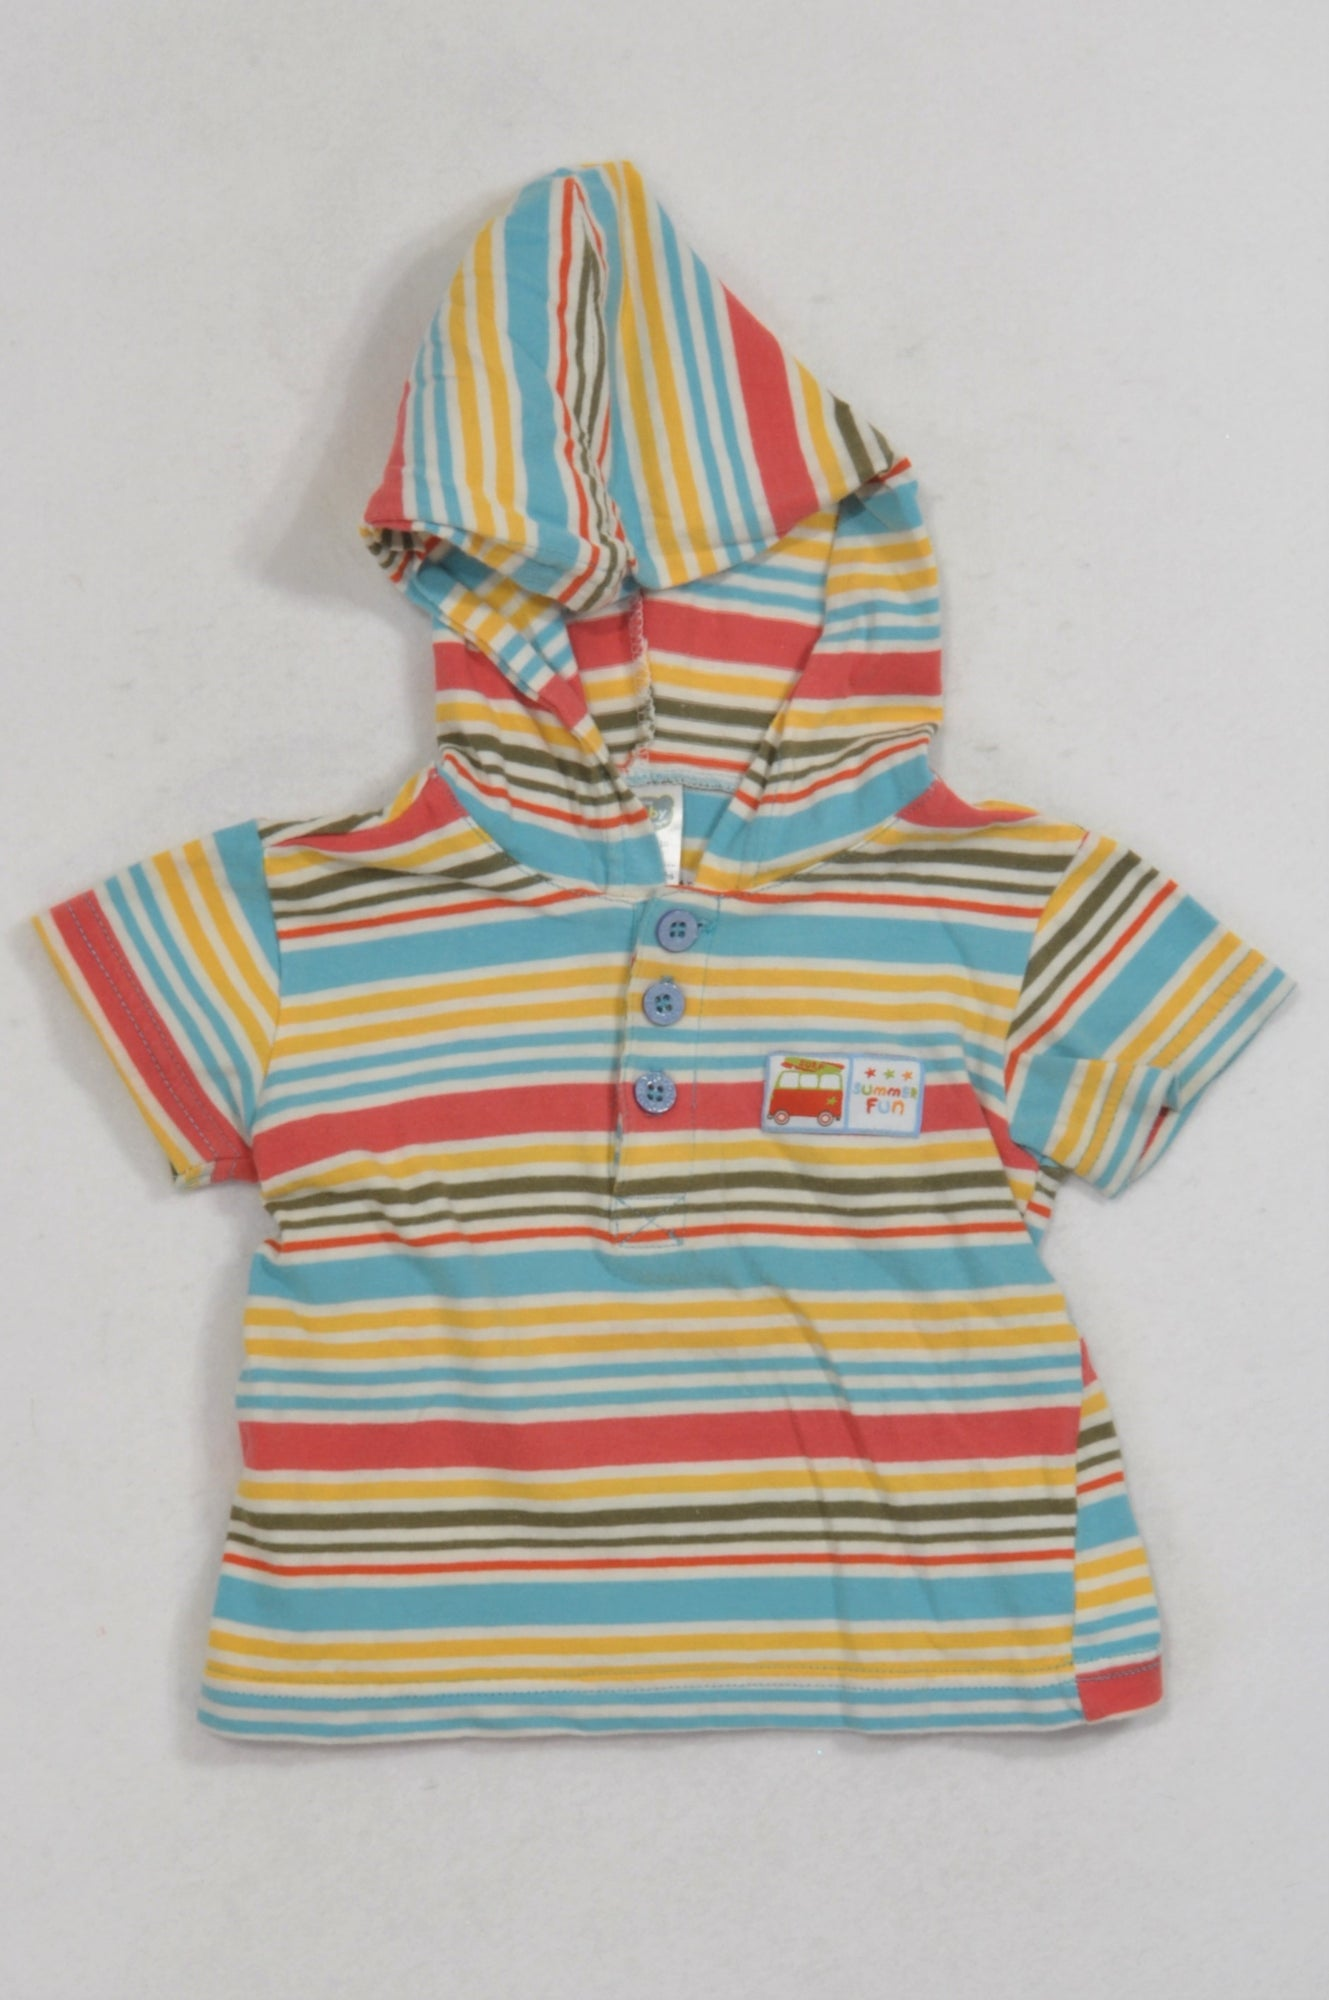 Ackermans Multicolored Striped Hooded T-shirt Girls 2-3 years